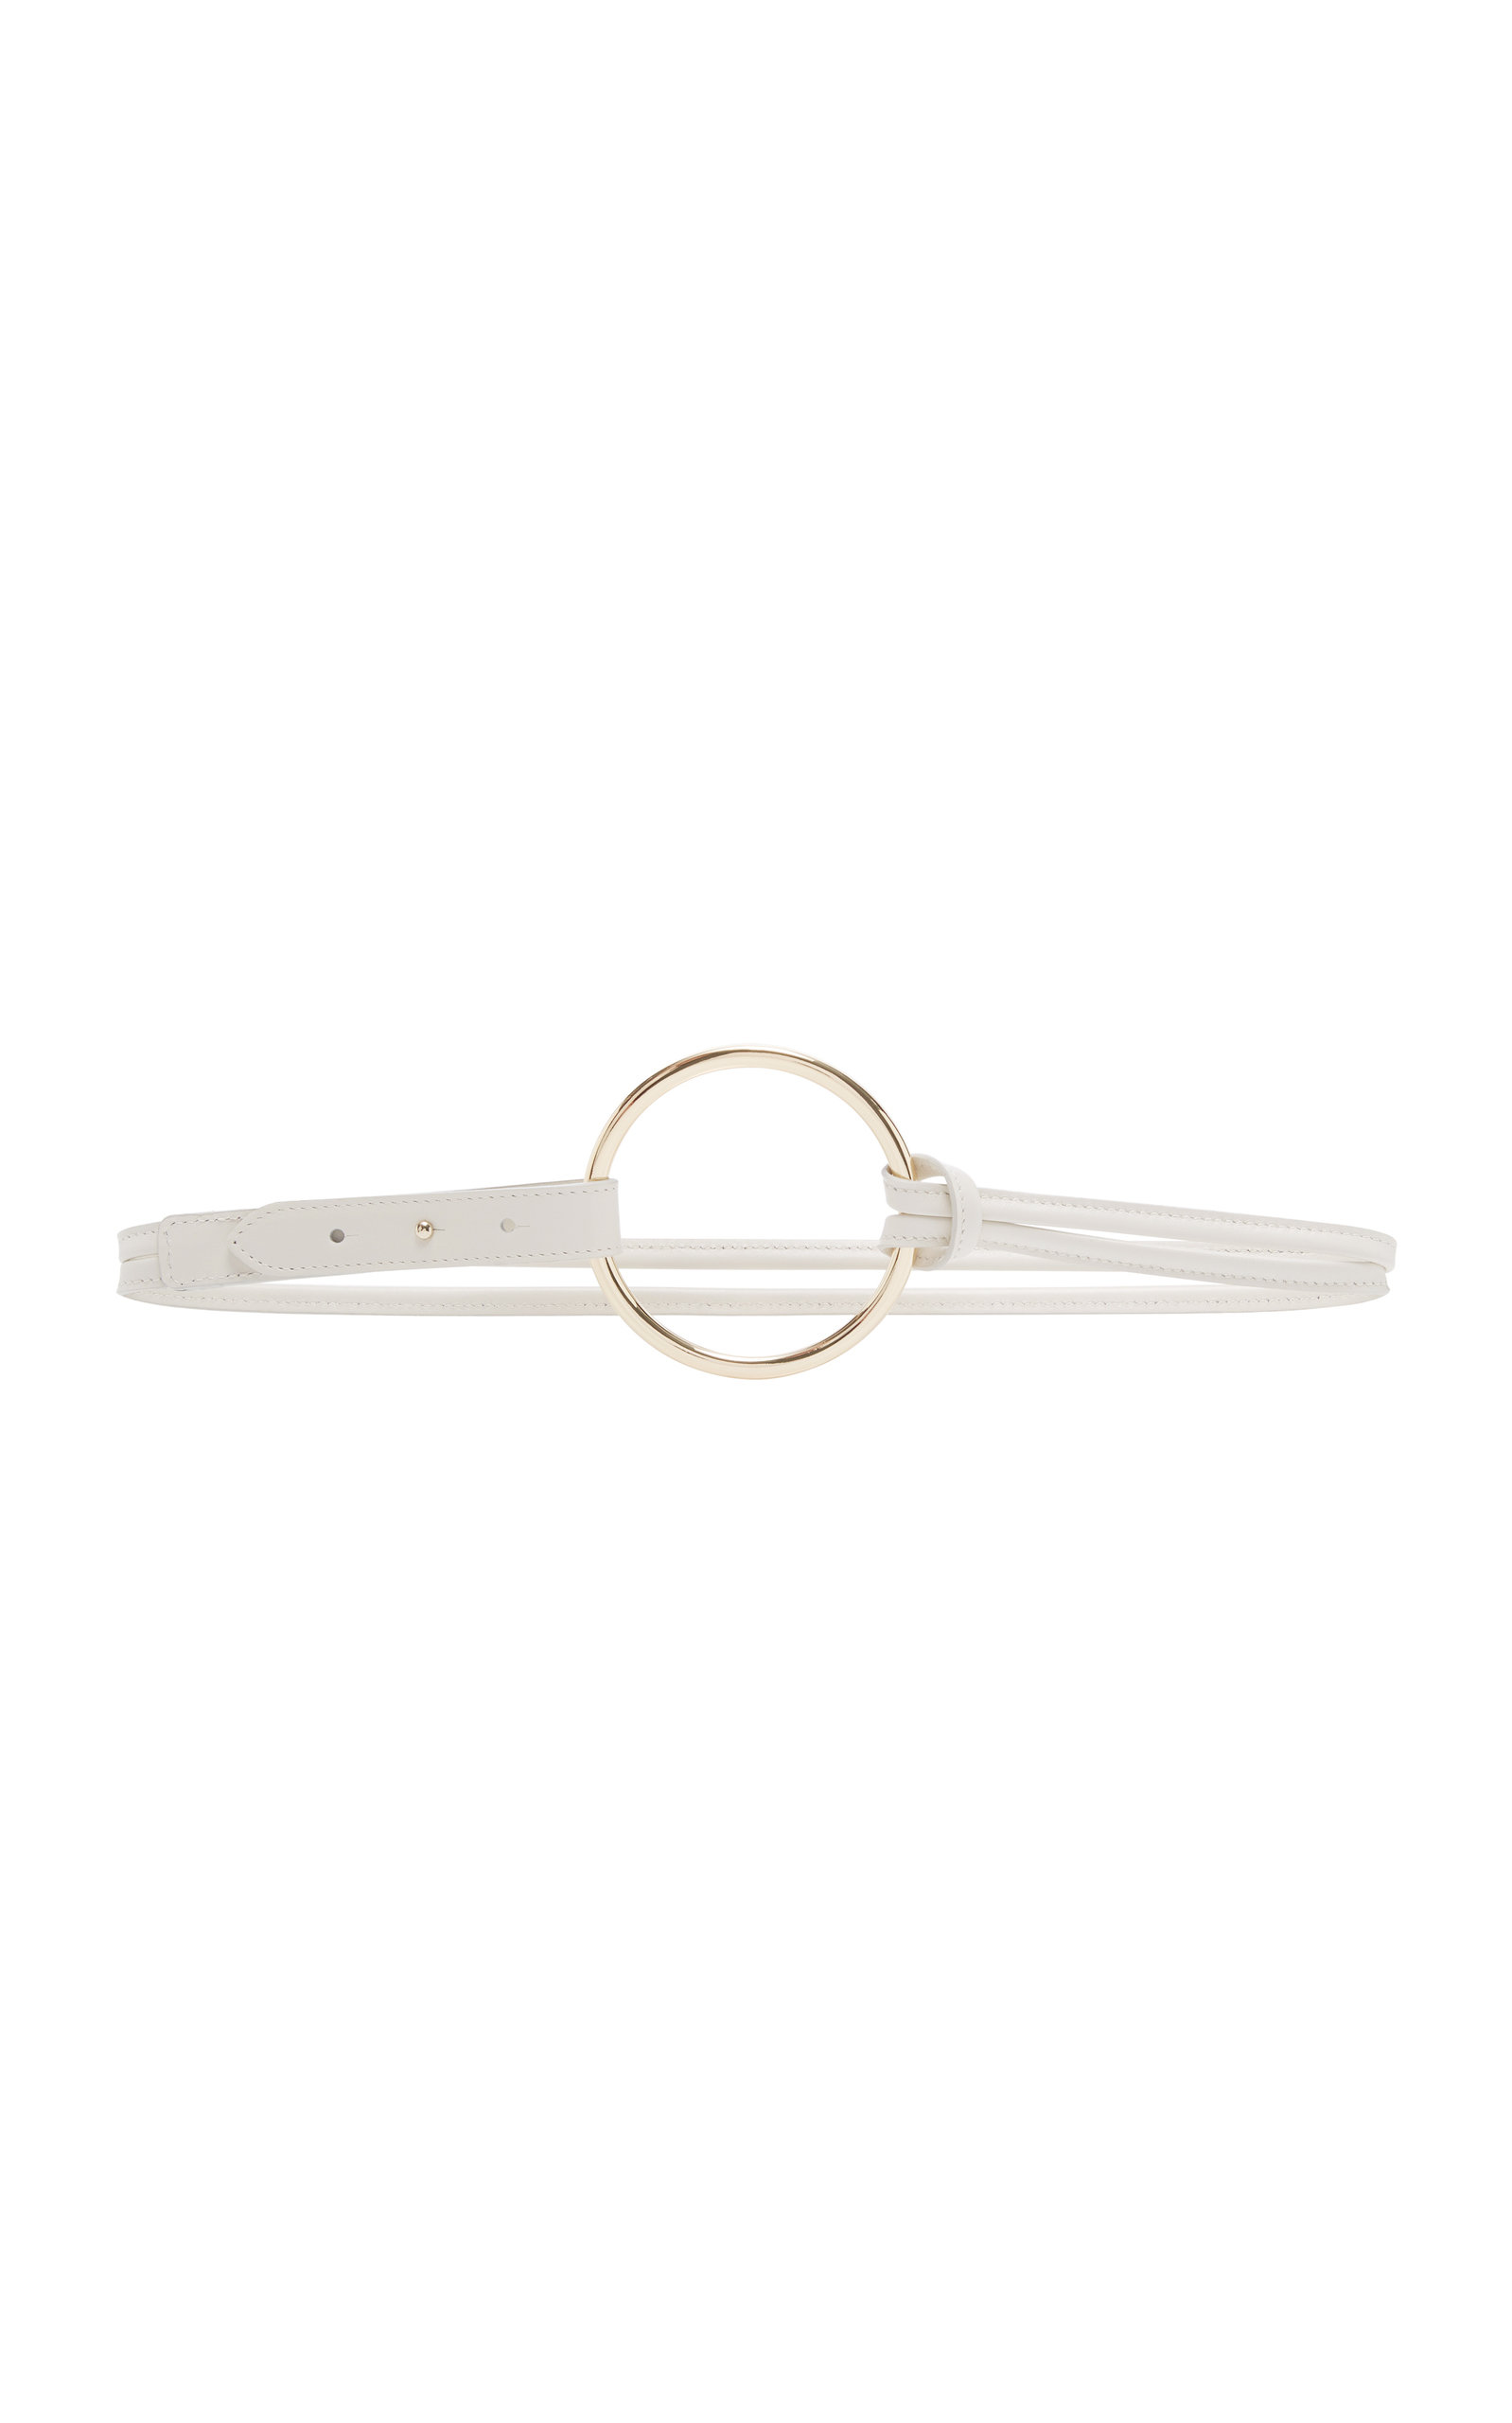 MAISON BOINET M'O EXCLUSIVE DOUBLE STRAP RING LEATHER BELT